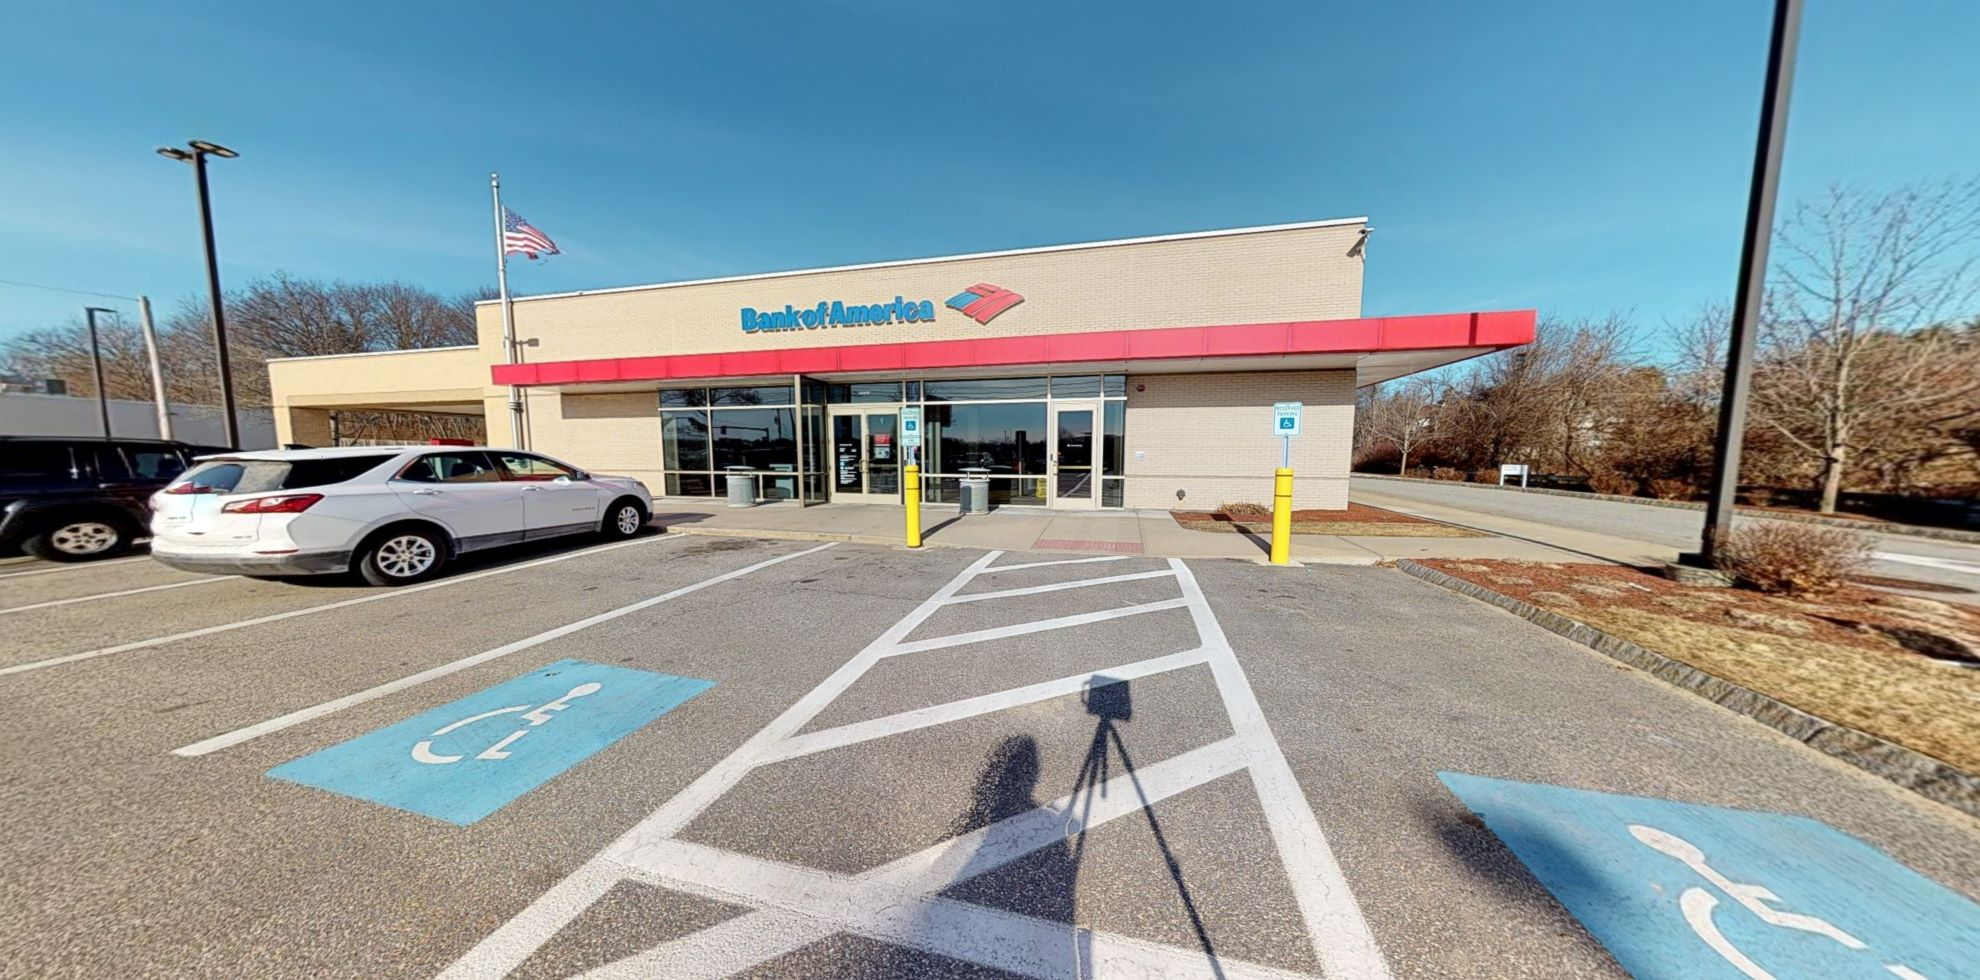 Bank of America financial center with drive-thru ATM   1000 S Willow St, Manchester, NH 03103